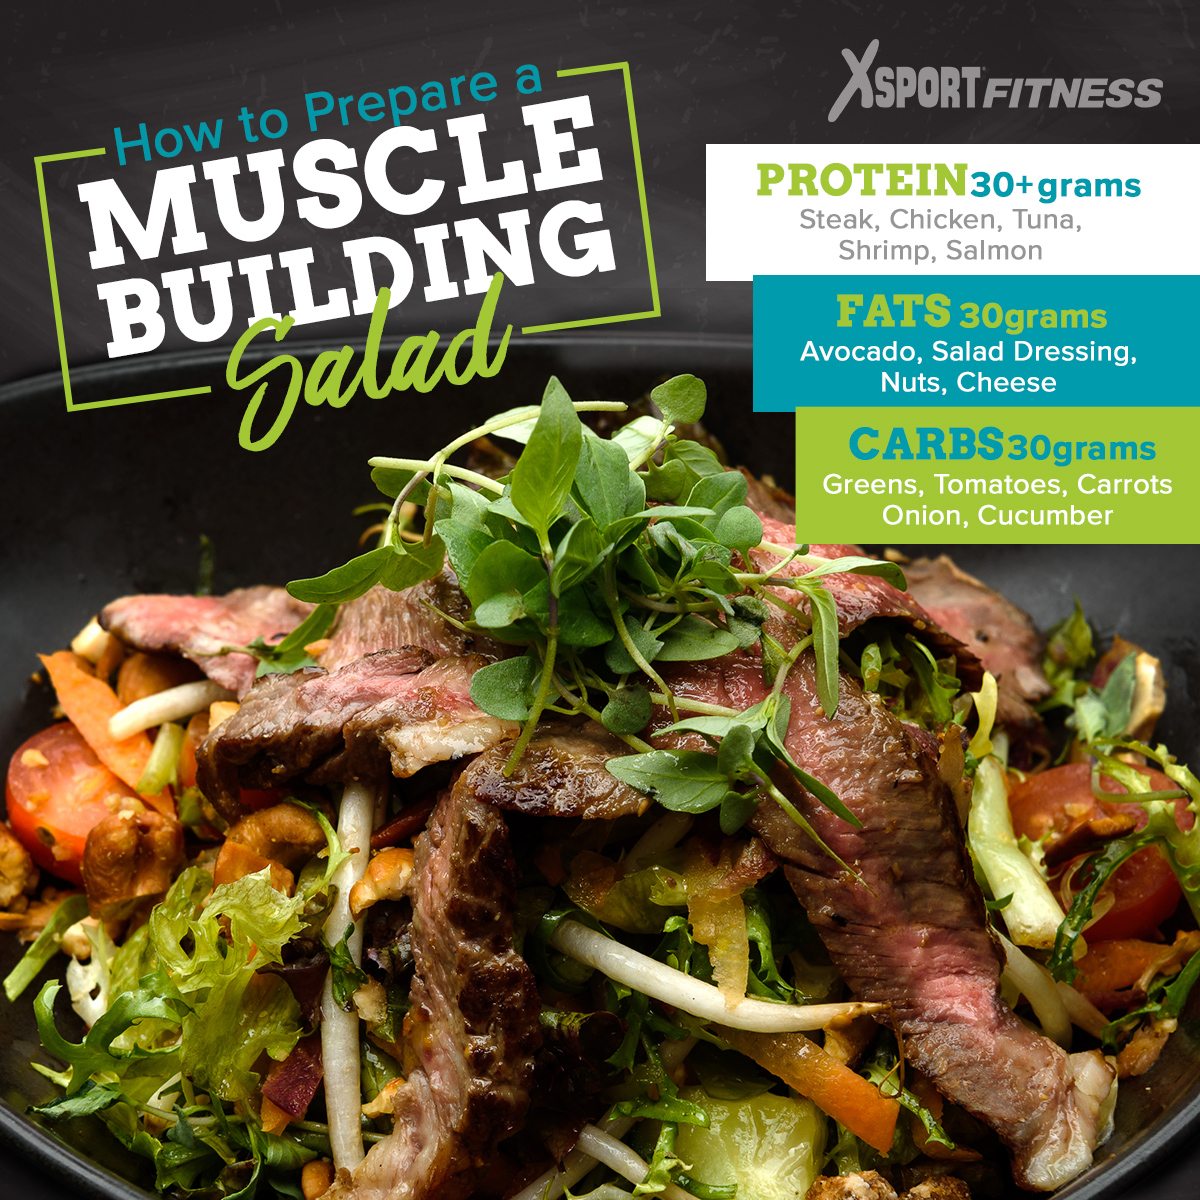 Healthy salad recipes muscle building the xsport life muscle building salads steak salad malvernweather Choice Image